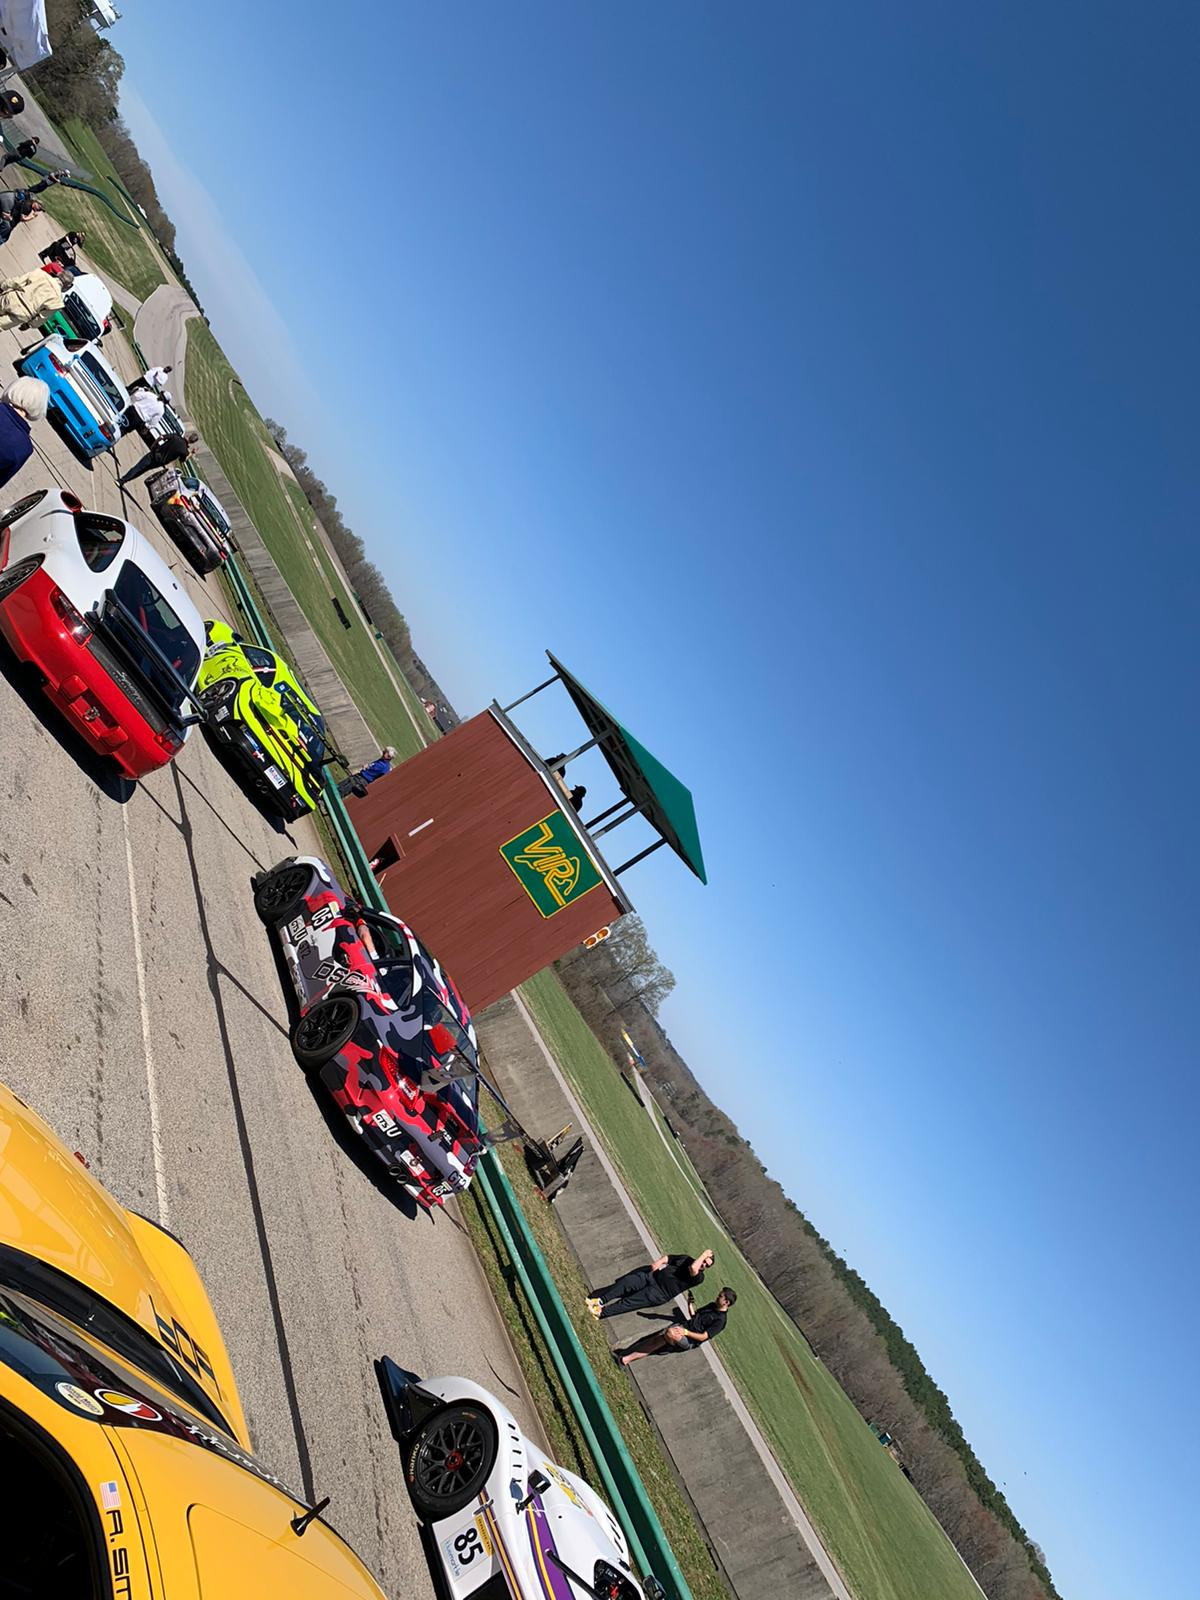 That's more like it! We had blue sky and beautiful cars at VIR!